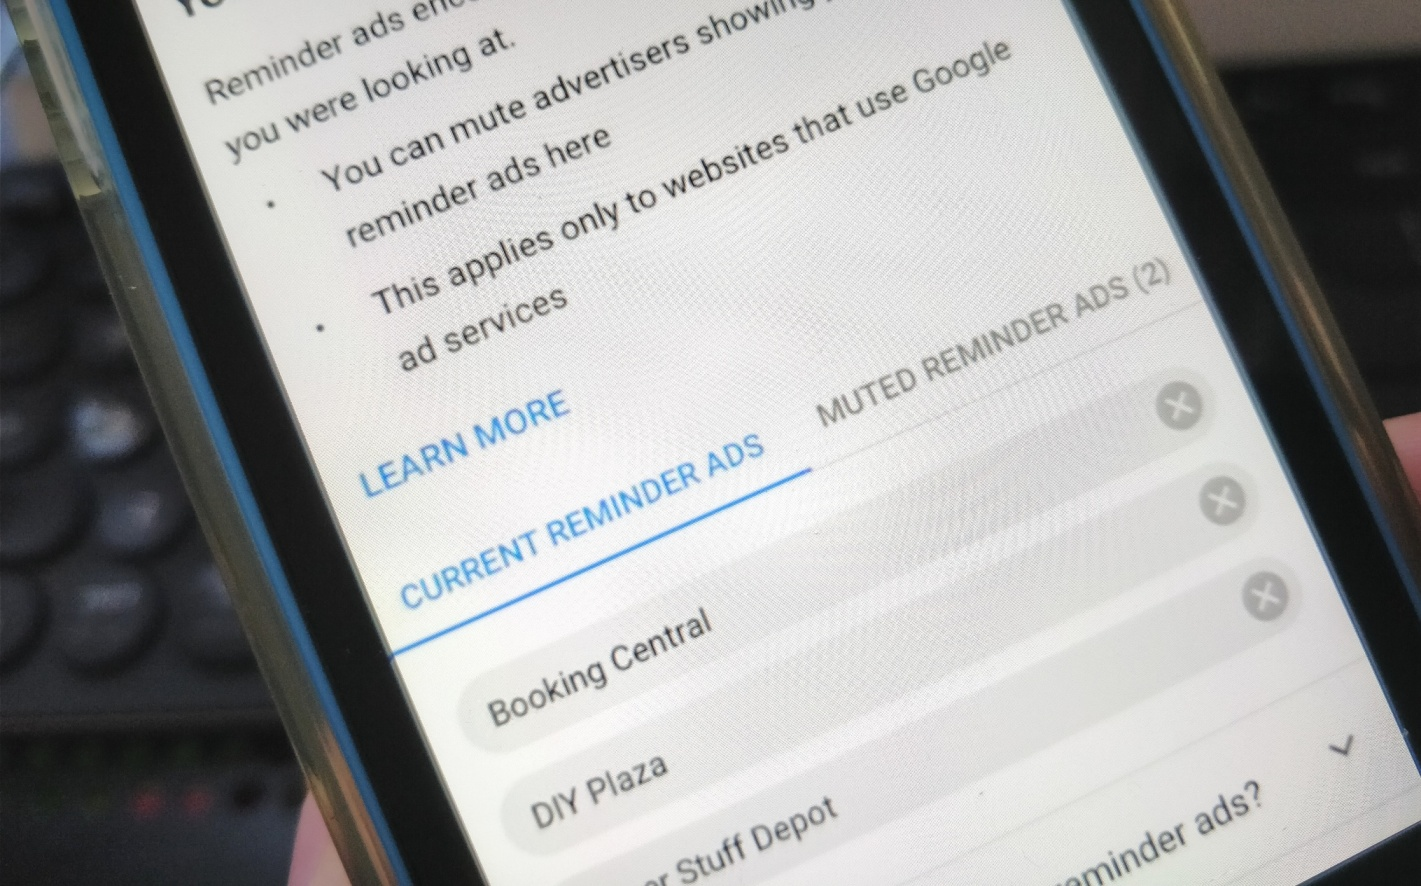 Google Lets Users Mute Repetitive Remarketing Ads